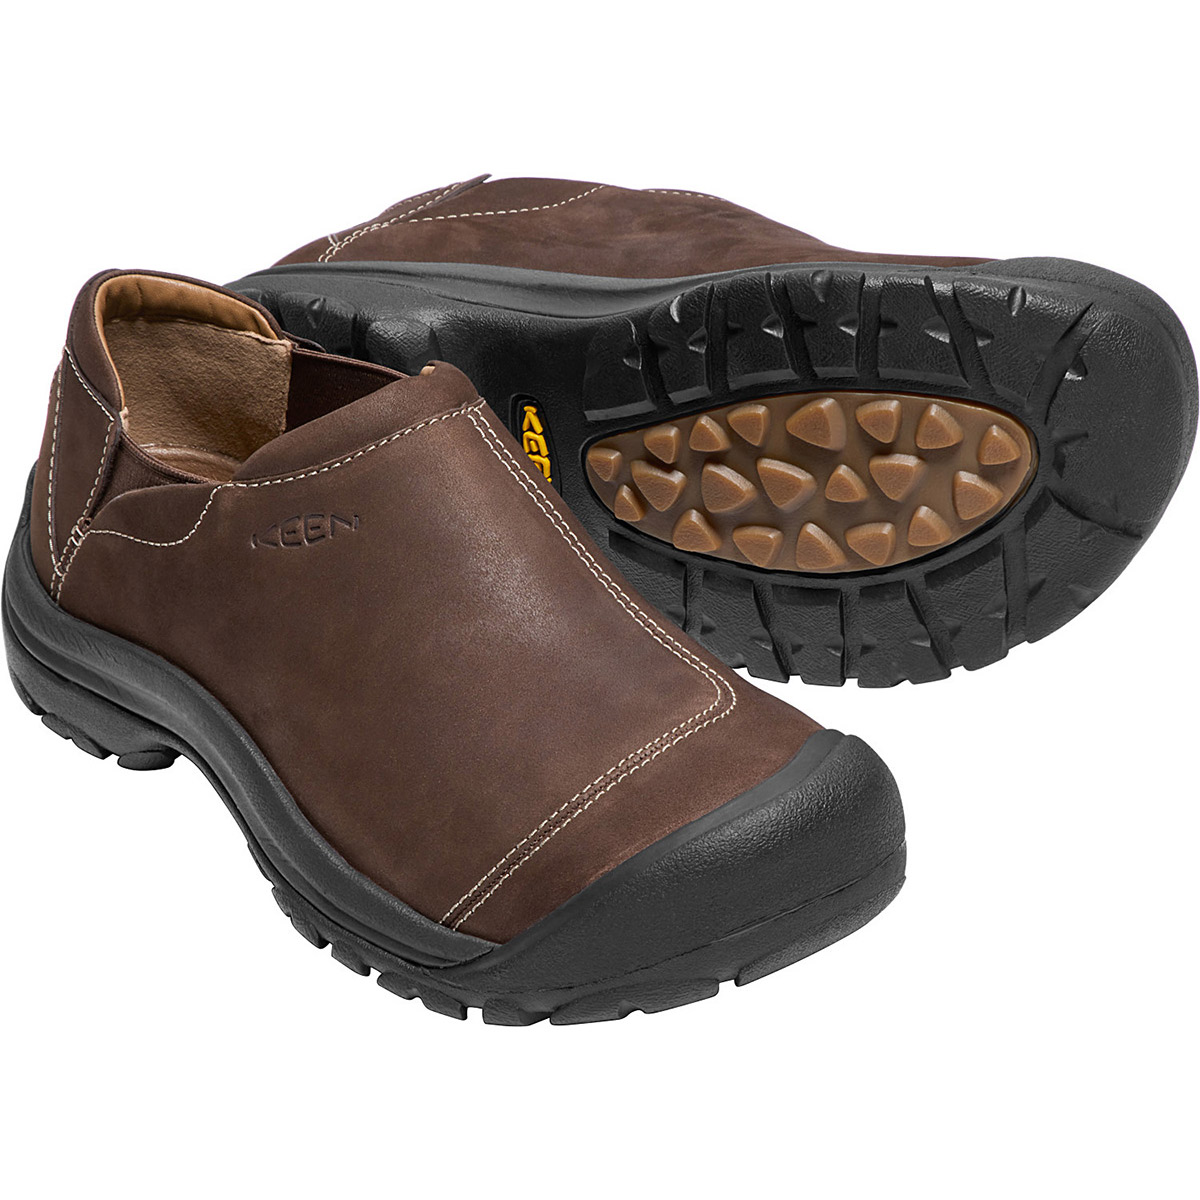 Ashland Casual Shoes, Chocolate Brown